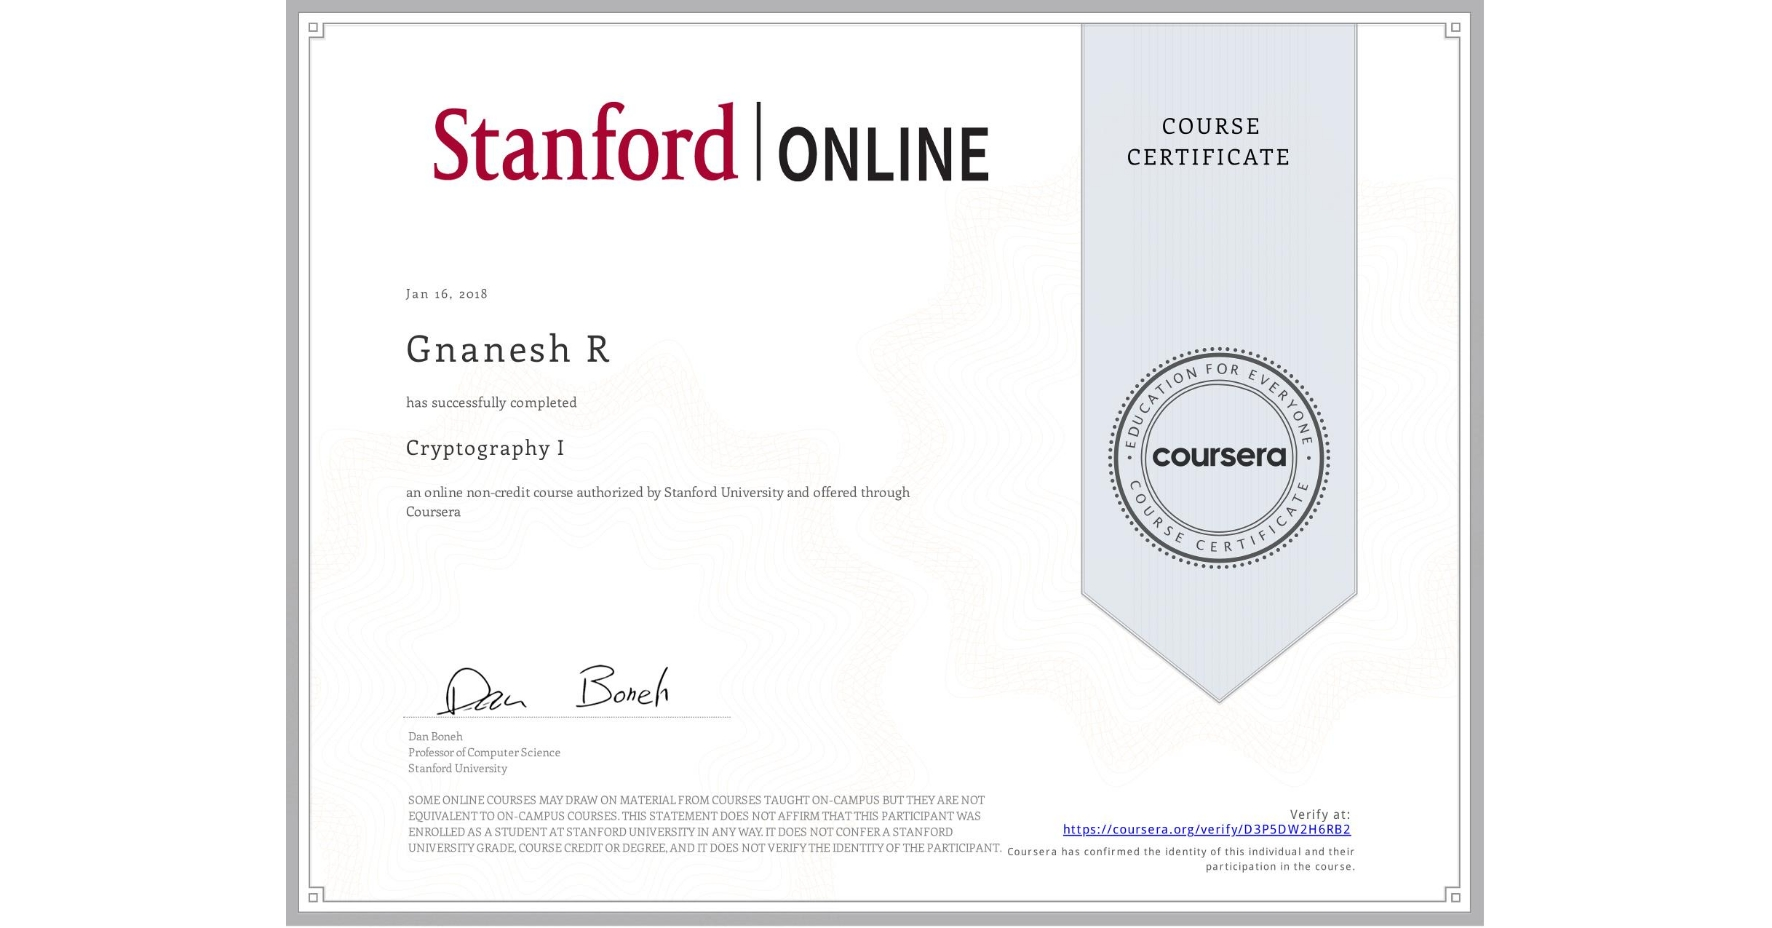 View certificate for Gnanesh R, Cryptography I, an online non-credit course authorized by Stanford University and offered through Coursera